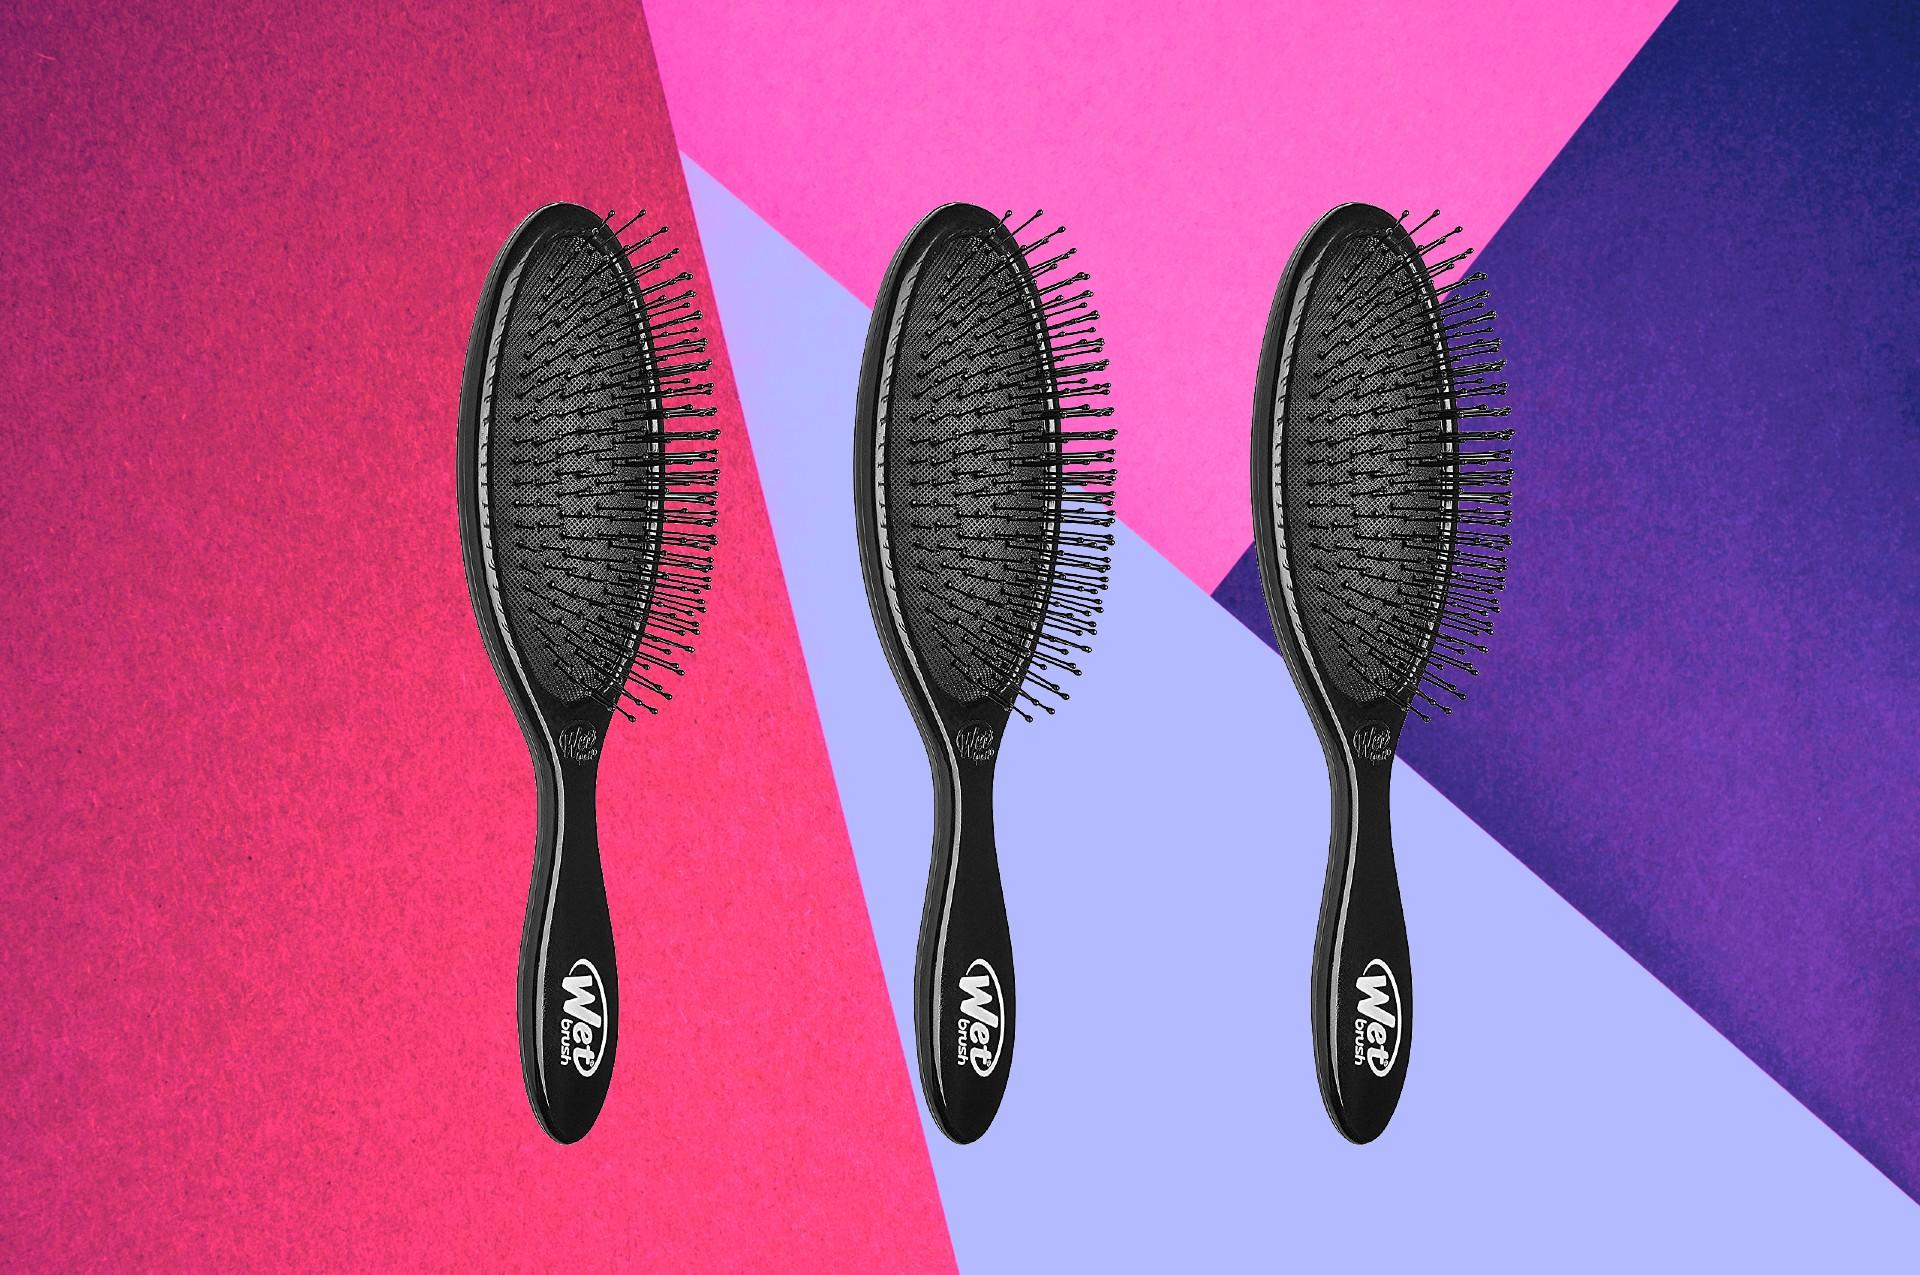 Over 4,800 reviewers call this brush 'life-changing'—and it's on sale for just $7.50